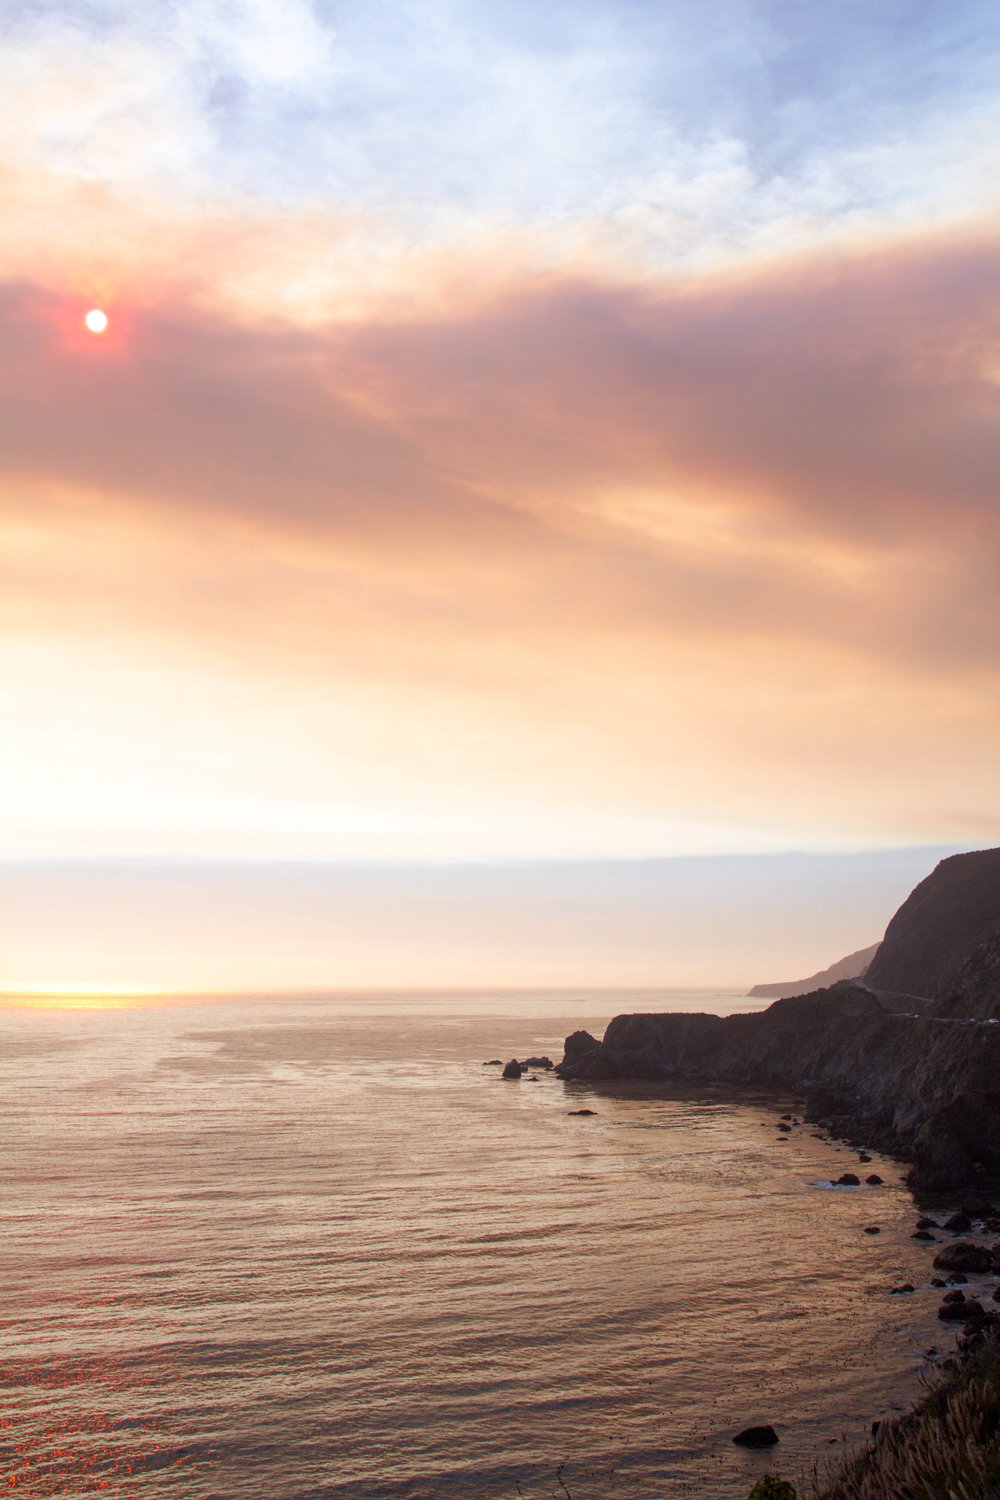 Big Sur coastline at sunset